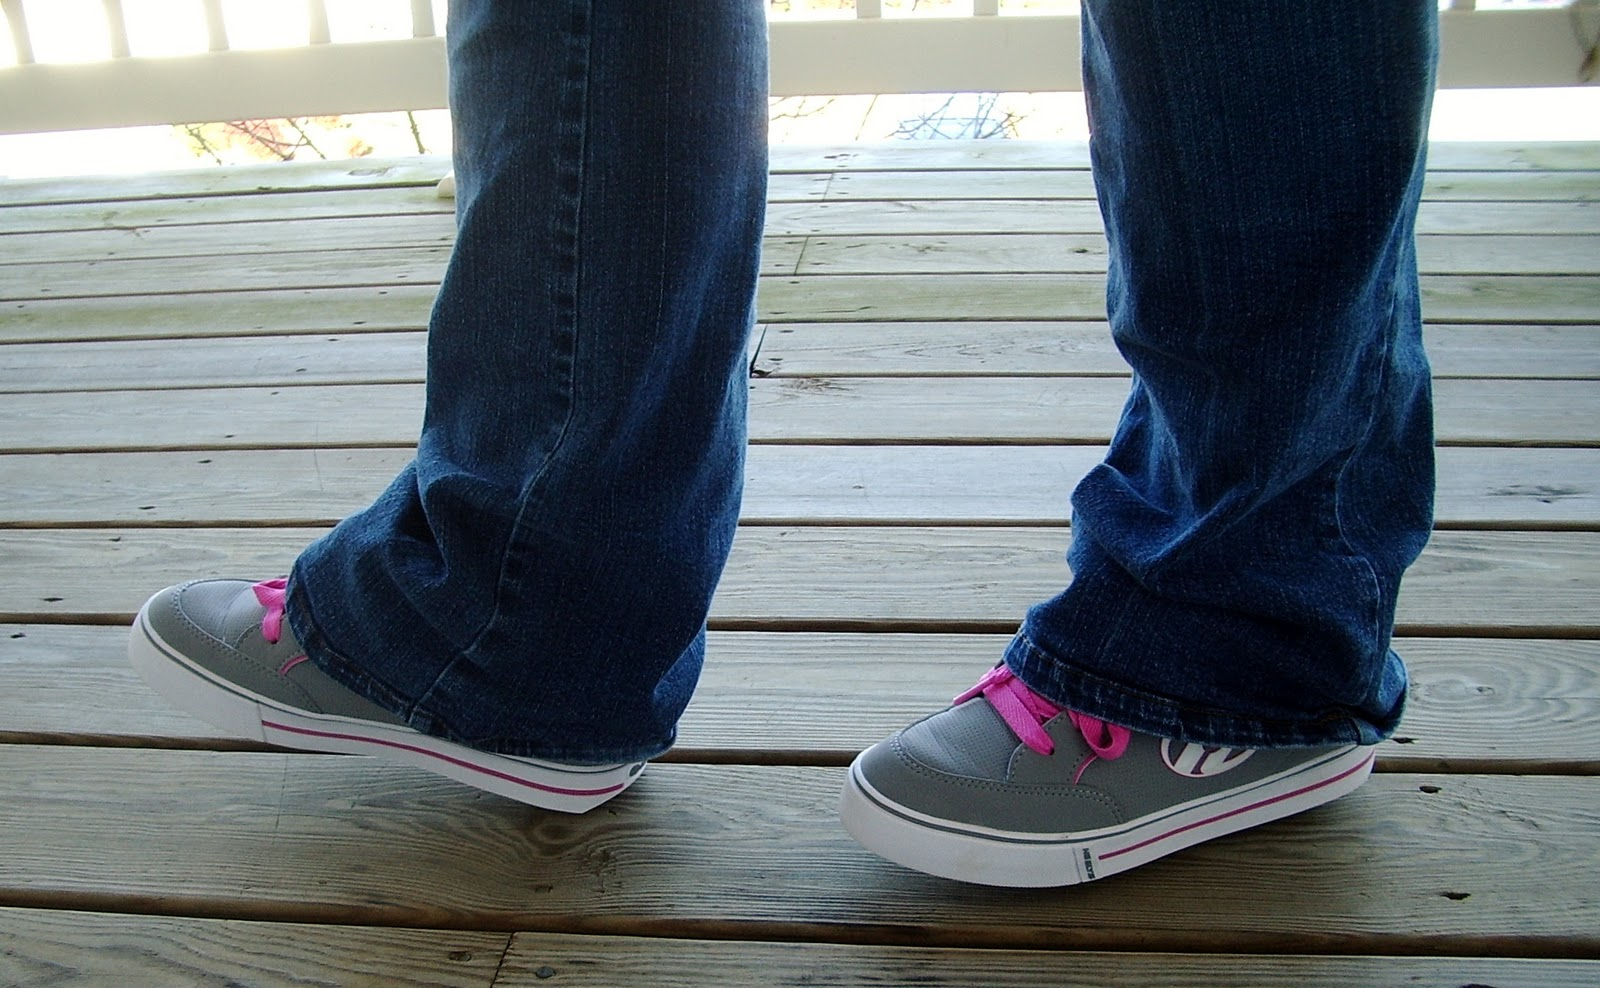 Heely skate shoes reviews - Back In Elementary And Middle School I Was An Avid Roller Blader In Line Skater I Was Hoping The Heelys Wouldn T Be Too Difficult